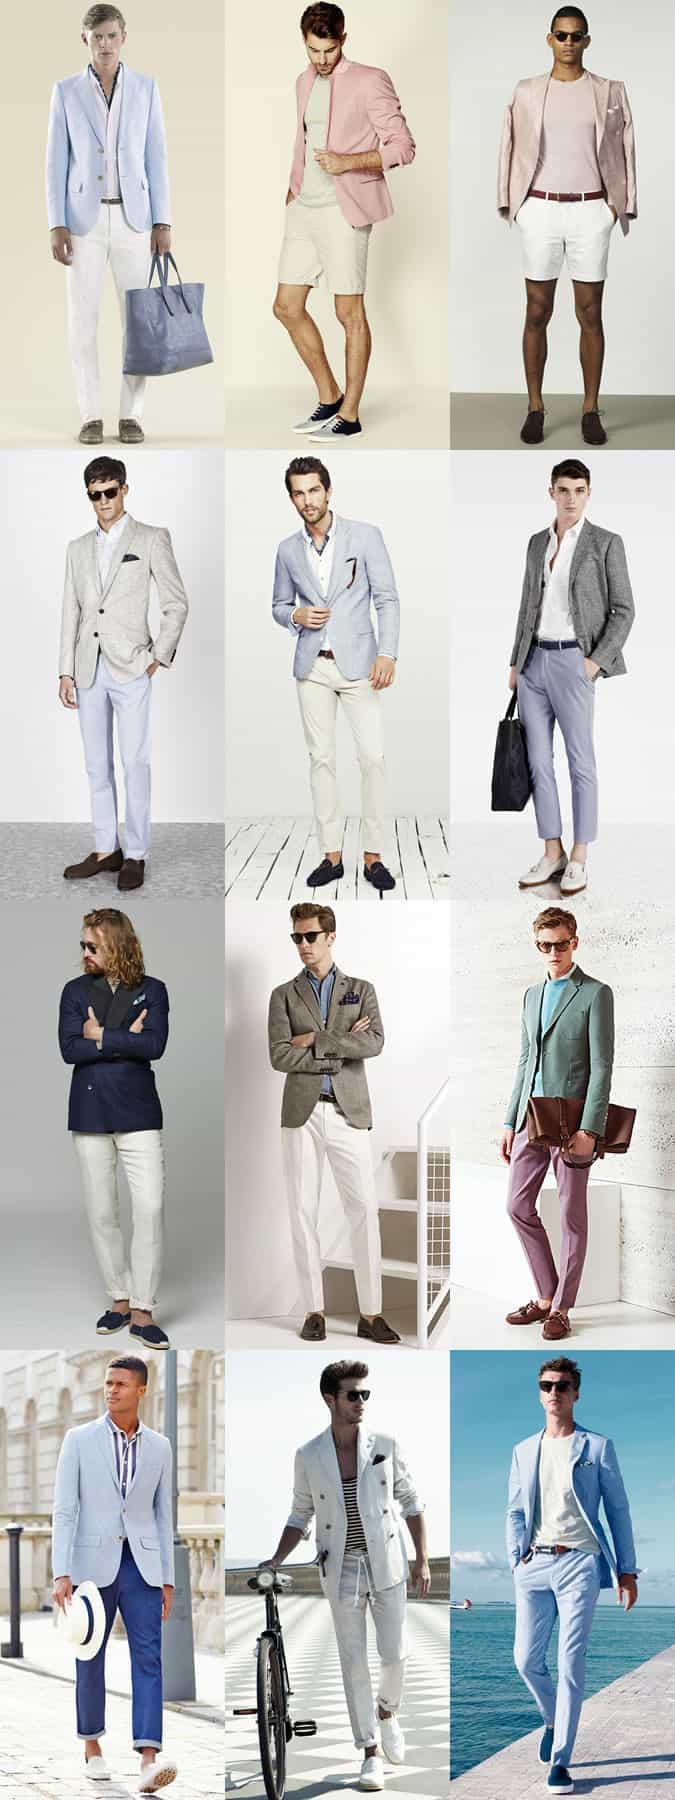 Men's Riviera Style Outfit Inspiration Lookbook - Lightweight, Unlined Tailoring